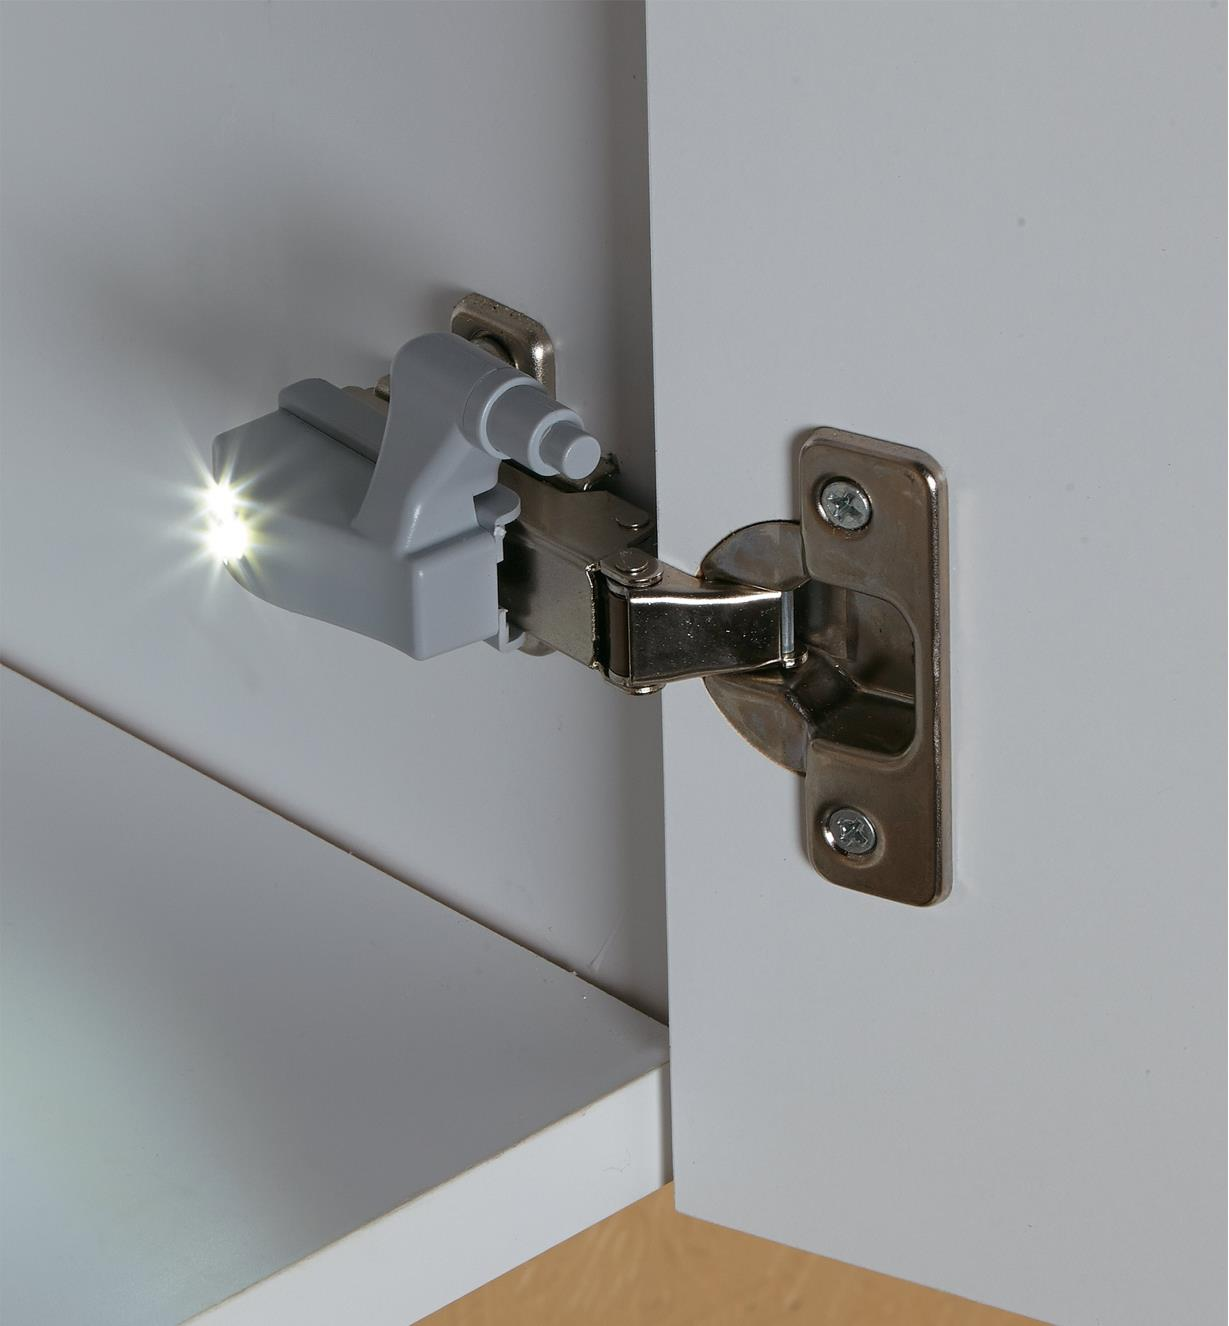 Wireless Hinge LED mounted on a hinge inside a cabinet